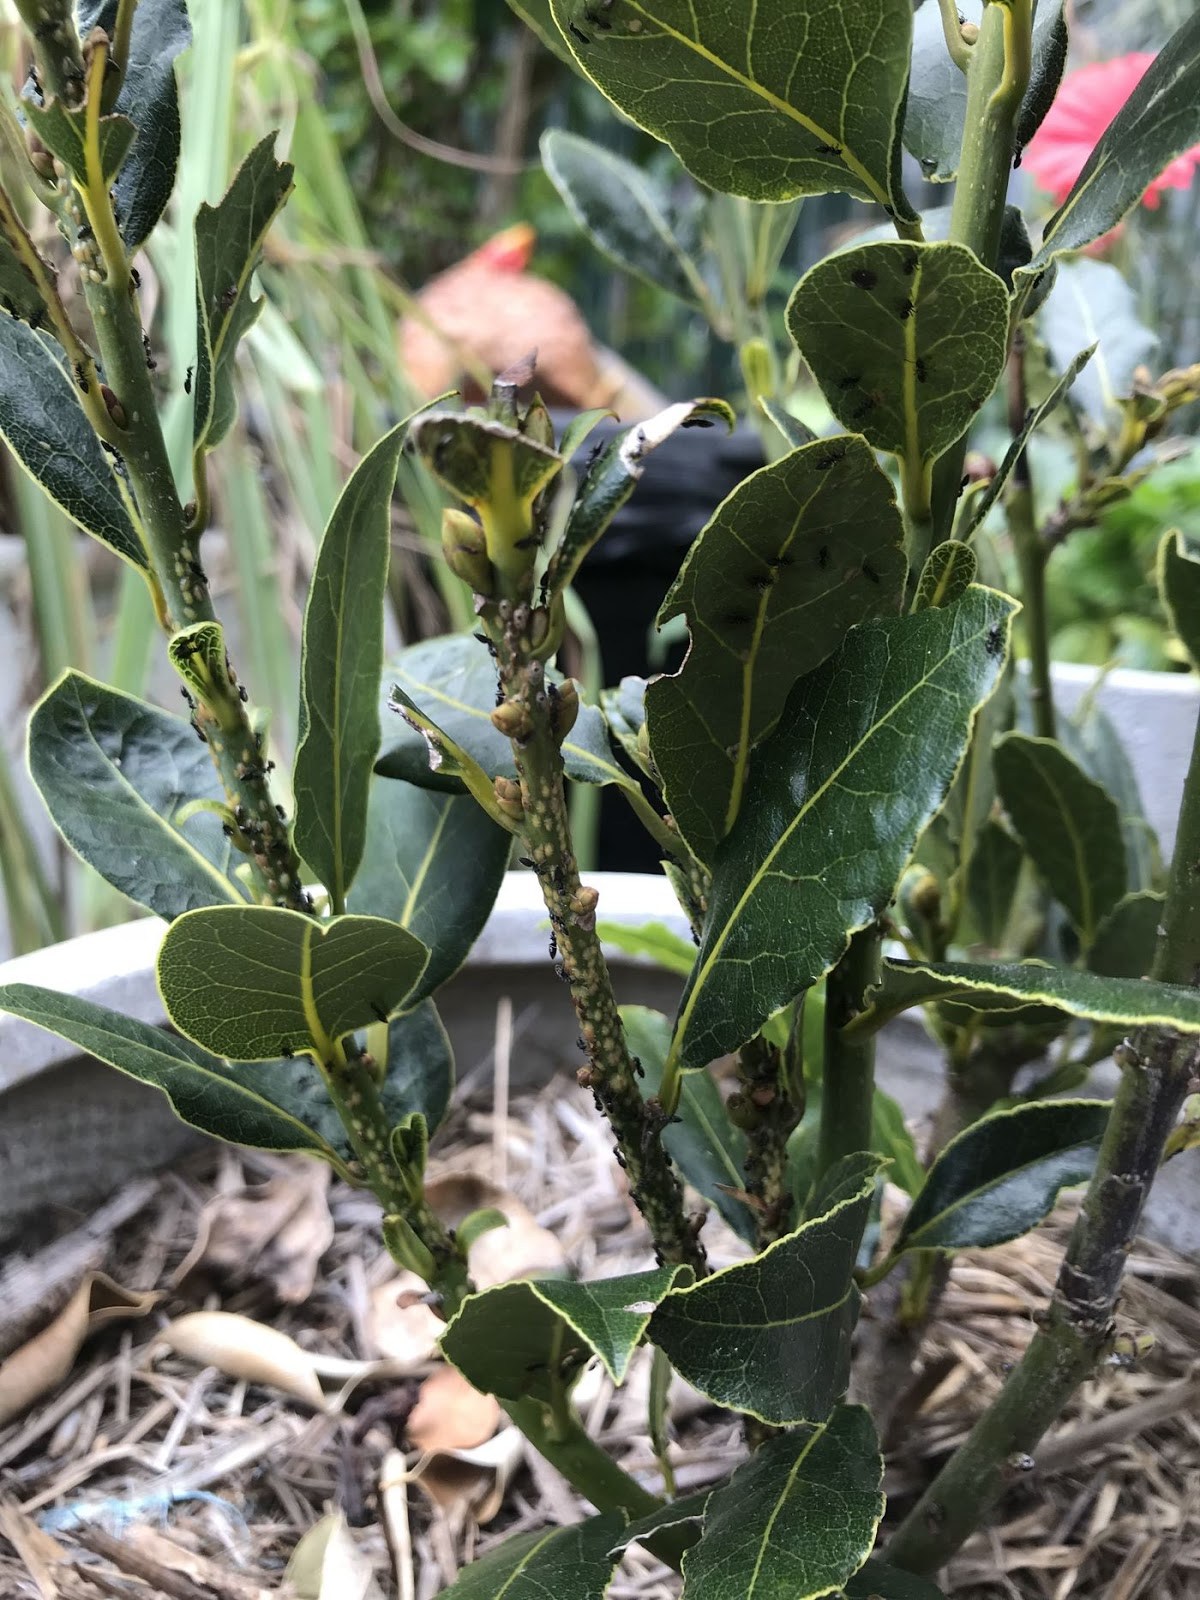 Dwarf bay tree with ants and aphids